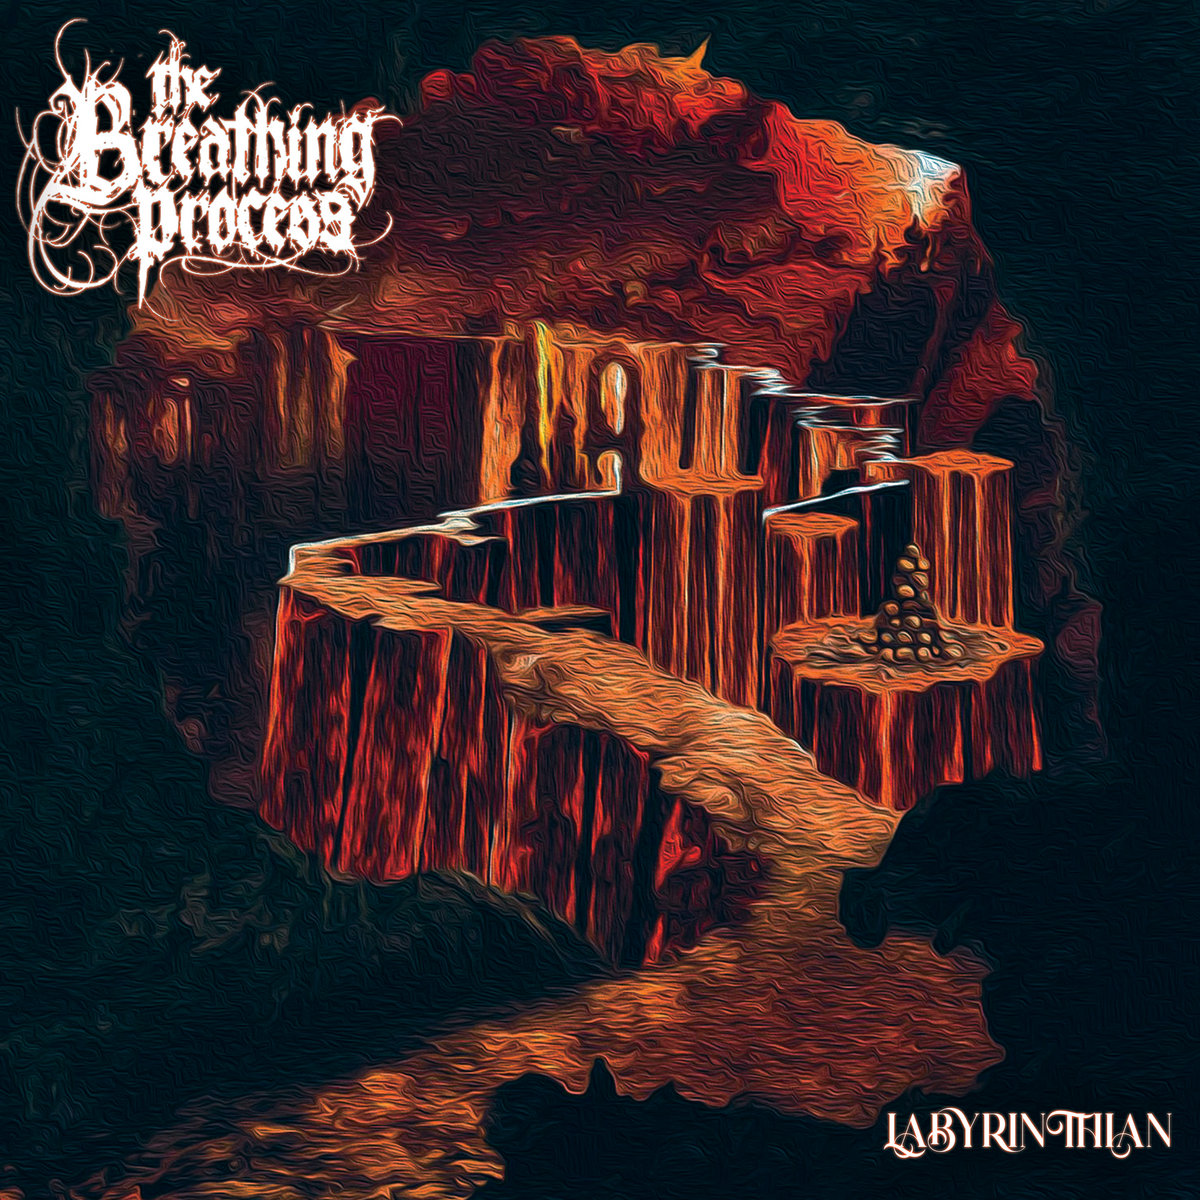 The Breathing Process Labyrinthian